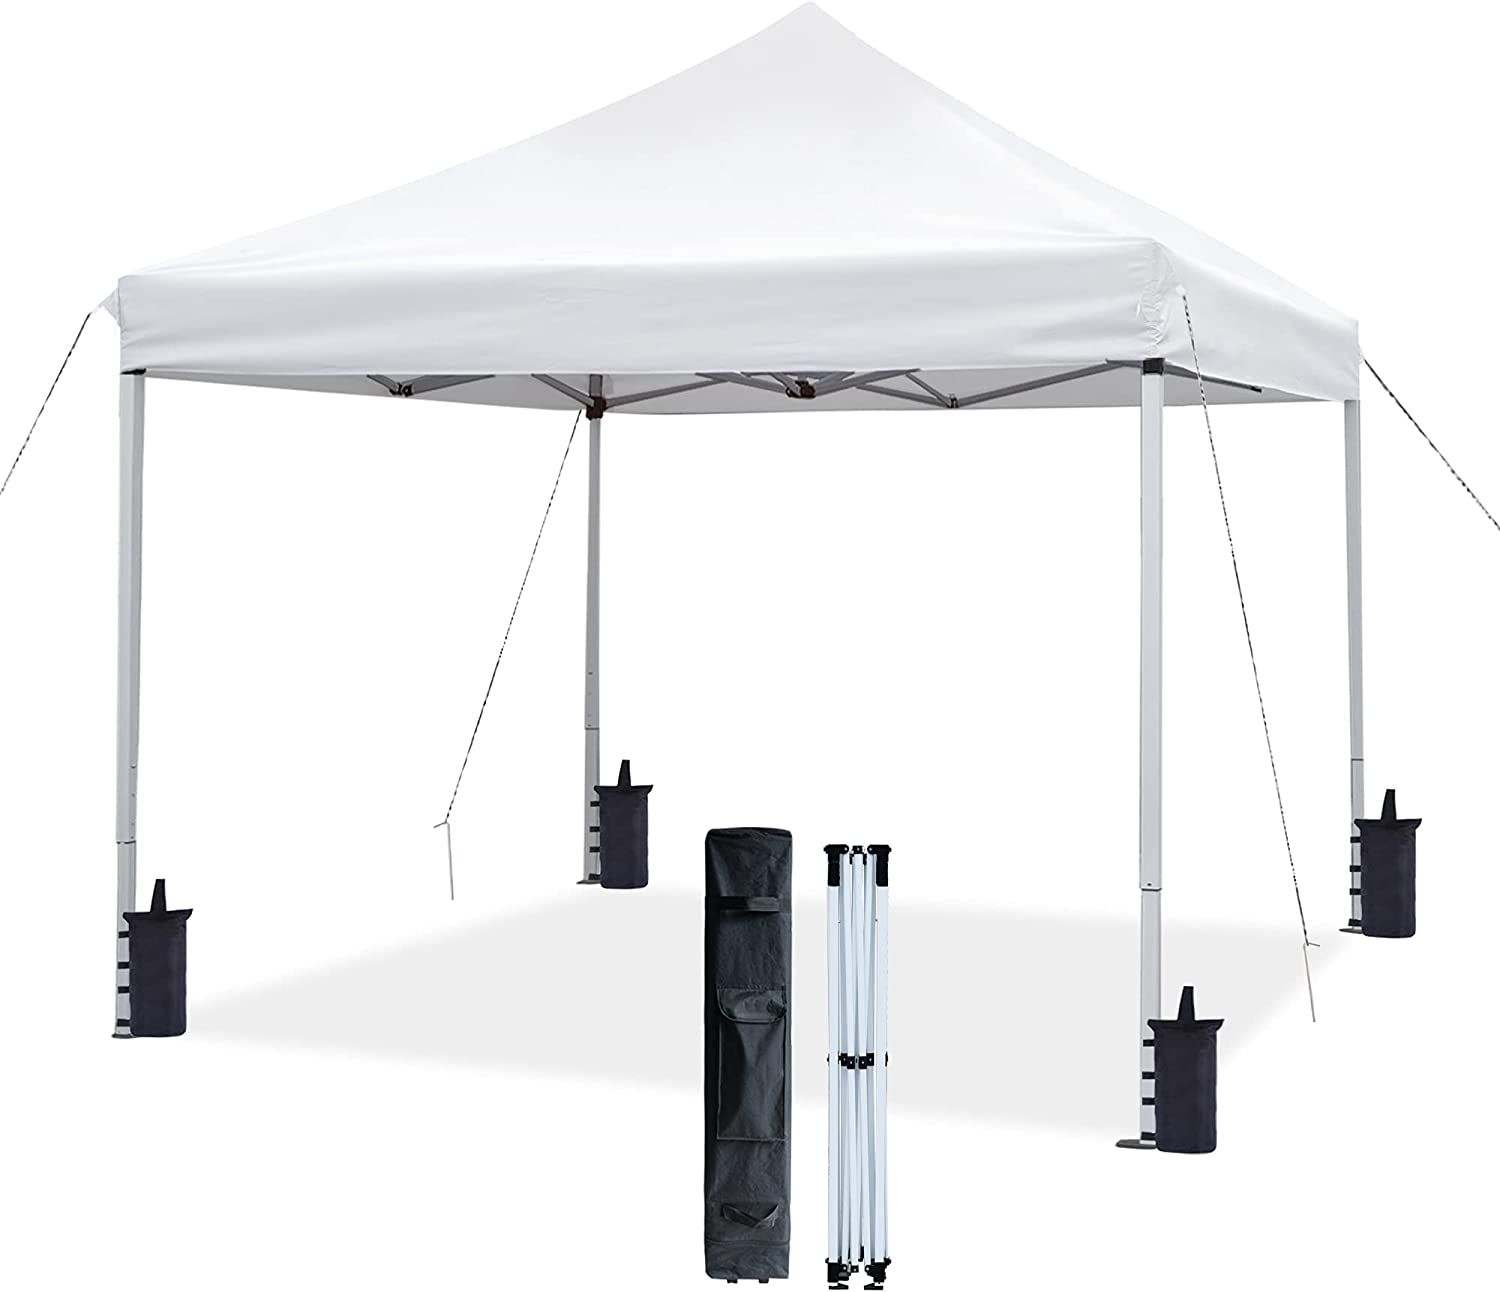 ASTEROUTDOOR 10'x10' Commercial 300 Max 76% OFF Denier Can Ranking TOP15 Up Pop Duty Heavy